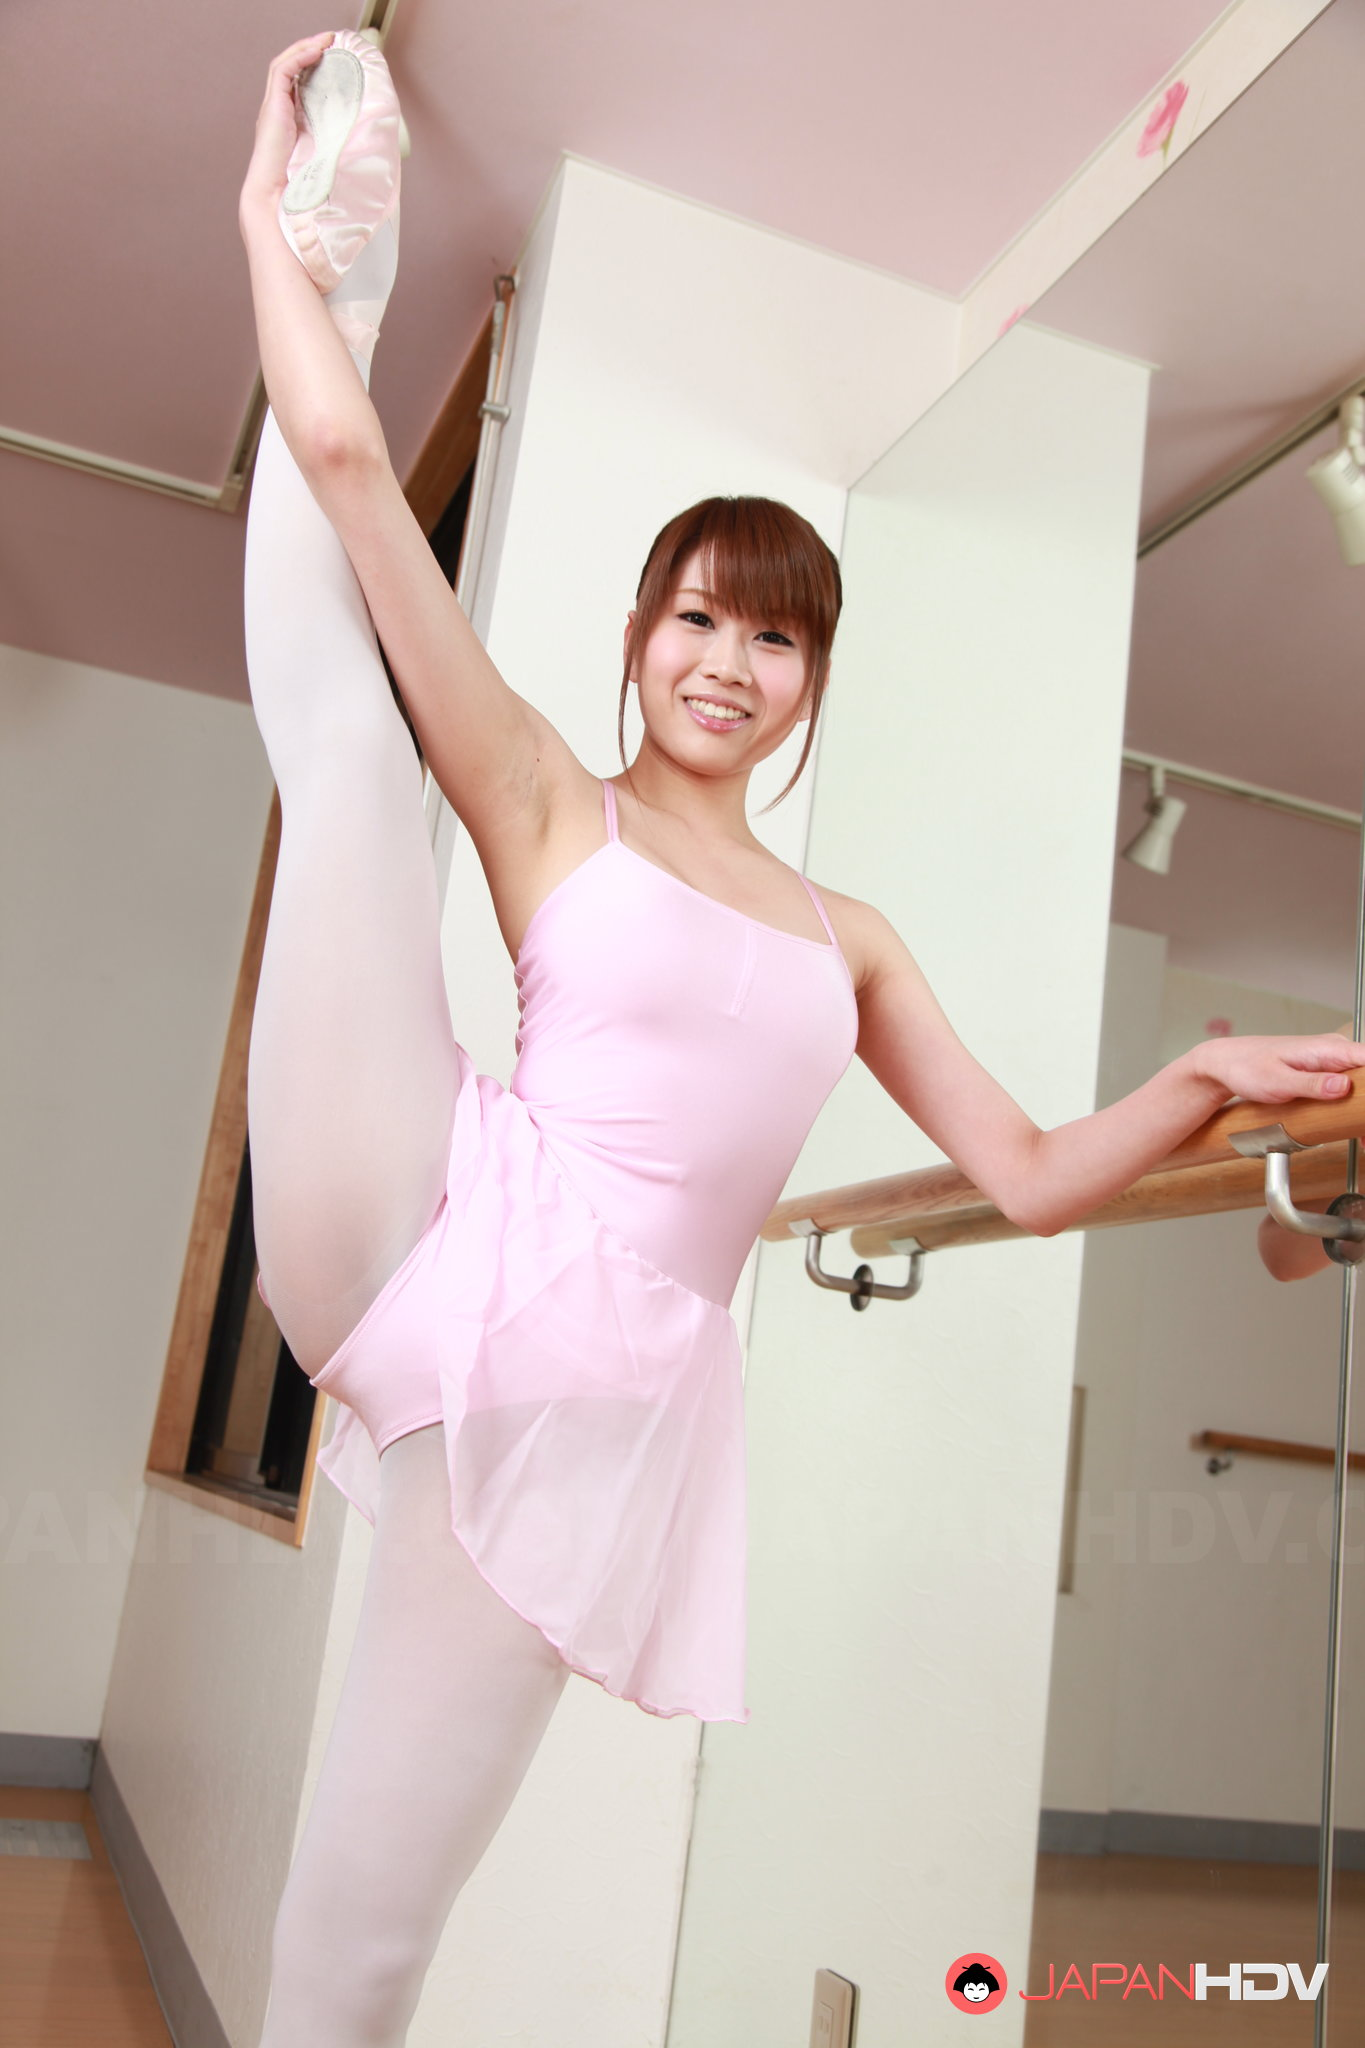 image Upskirts japanese girls 7 automatic machines for dances nv